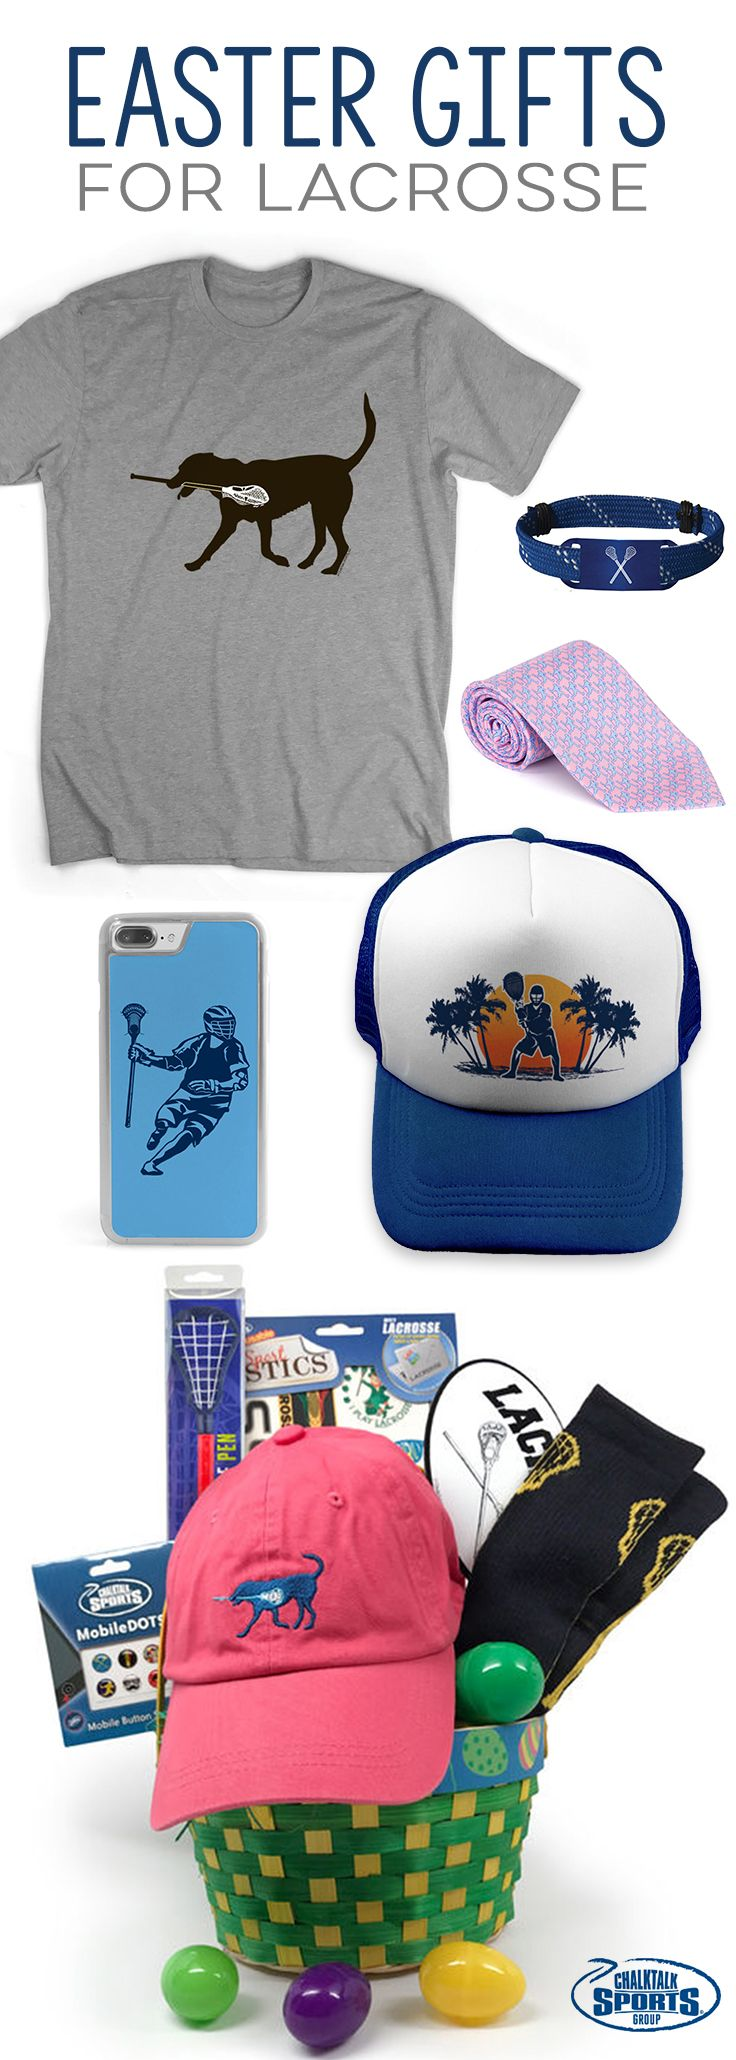 Treat your lacrosse player this Easter to our fun and festive gifts! From Easter baskets to apparel and accessories, we've got you covered for everyone on your shopping list!